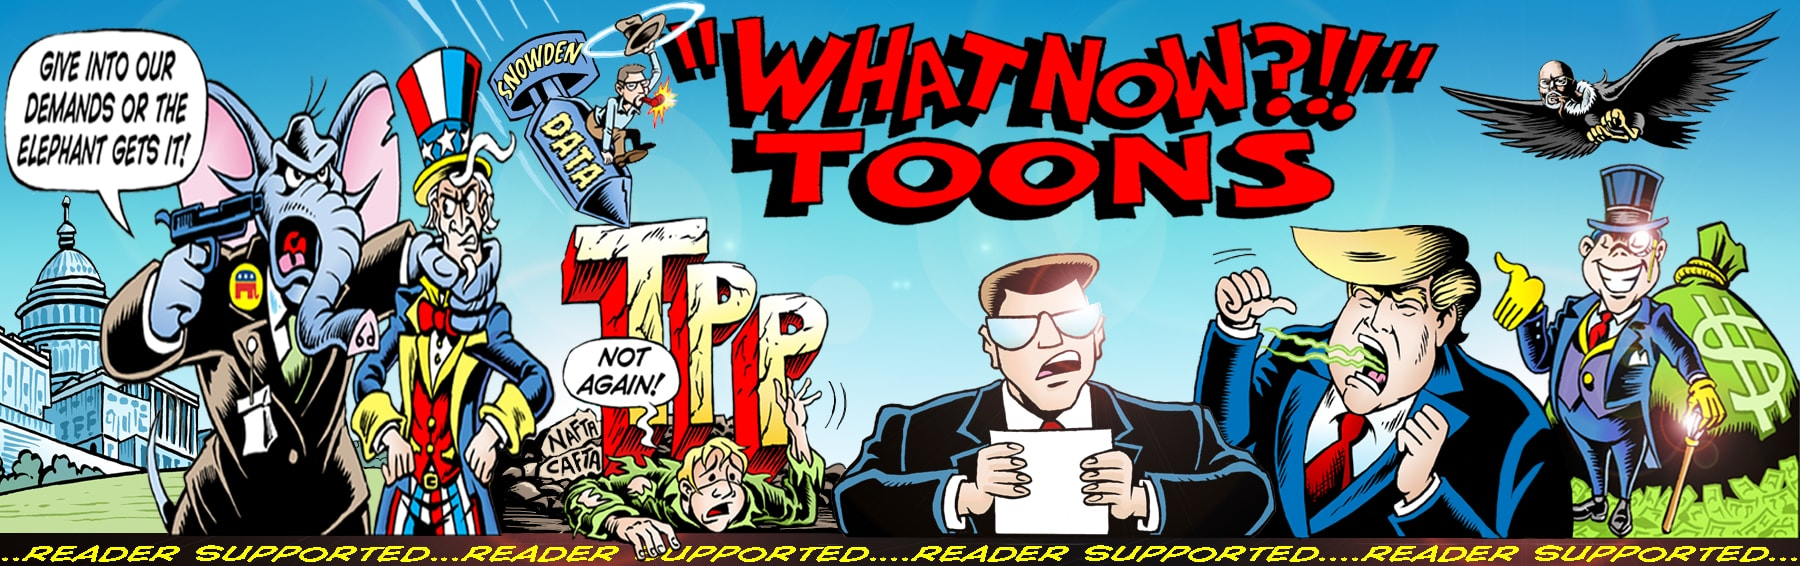 What Now?!? Toons by Keith Tucker